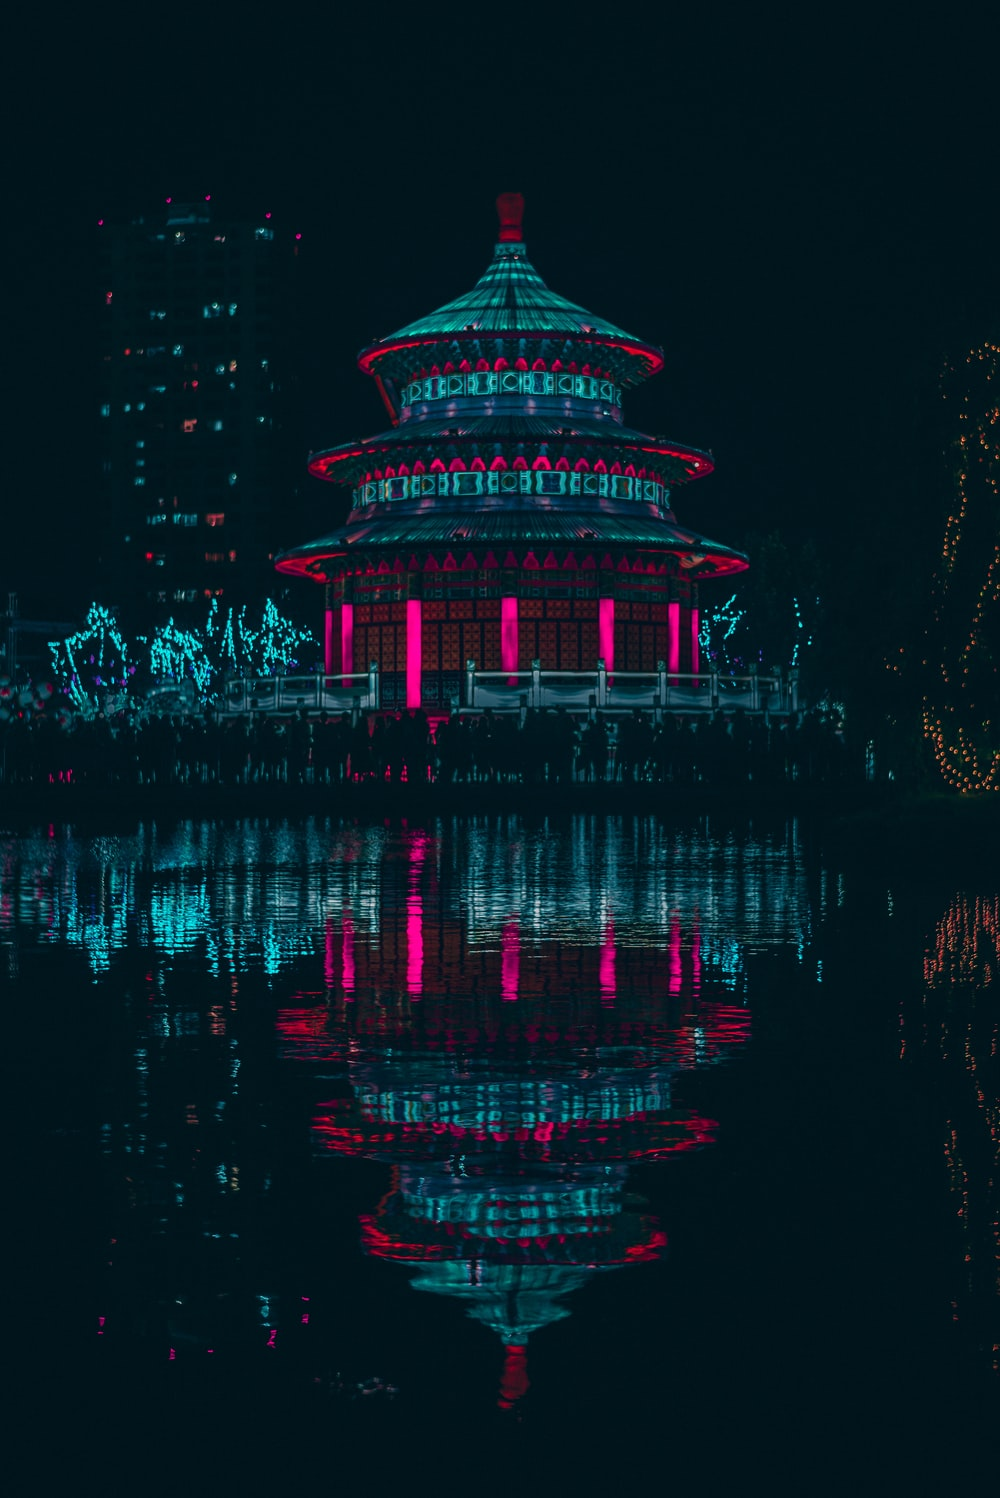 green and red lighted building near body of water during night time